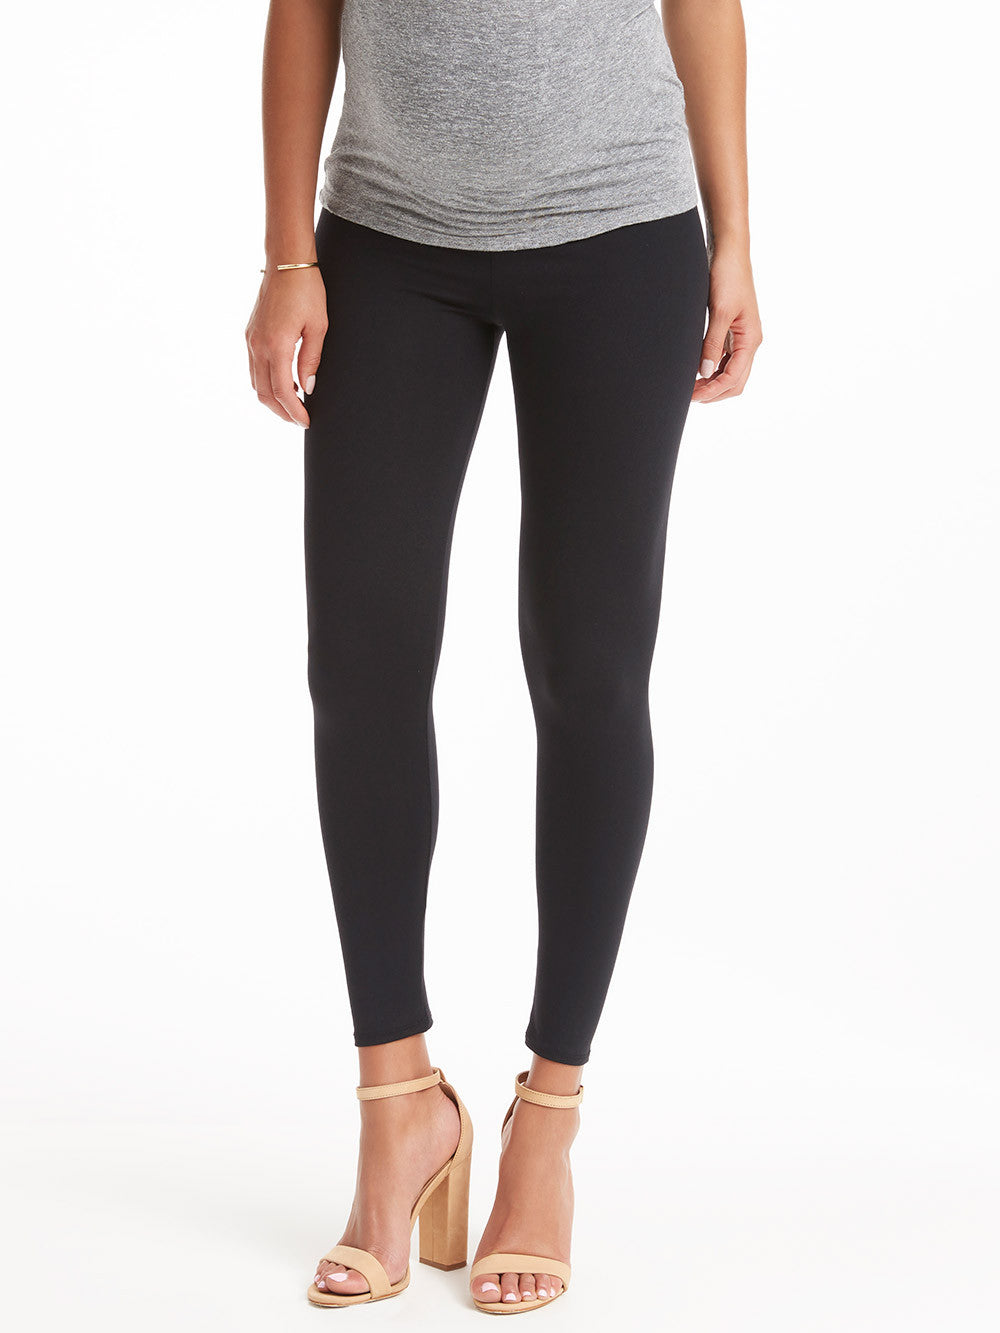 David Lerner Maternity Legging - Black | TILDEN